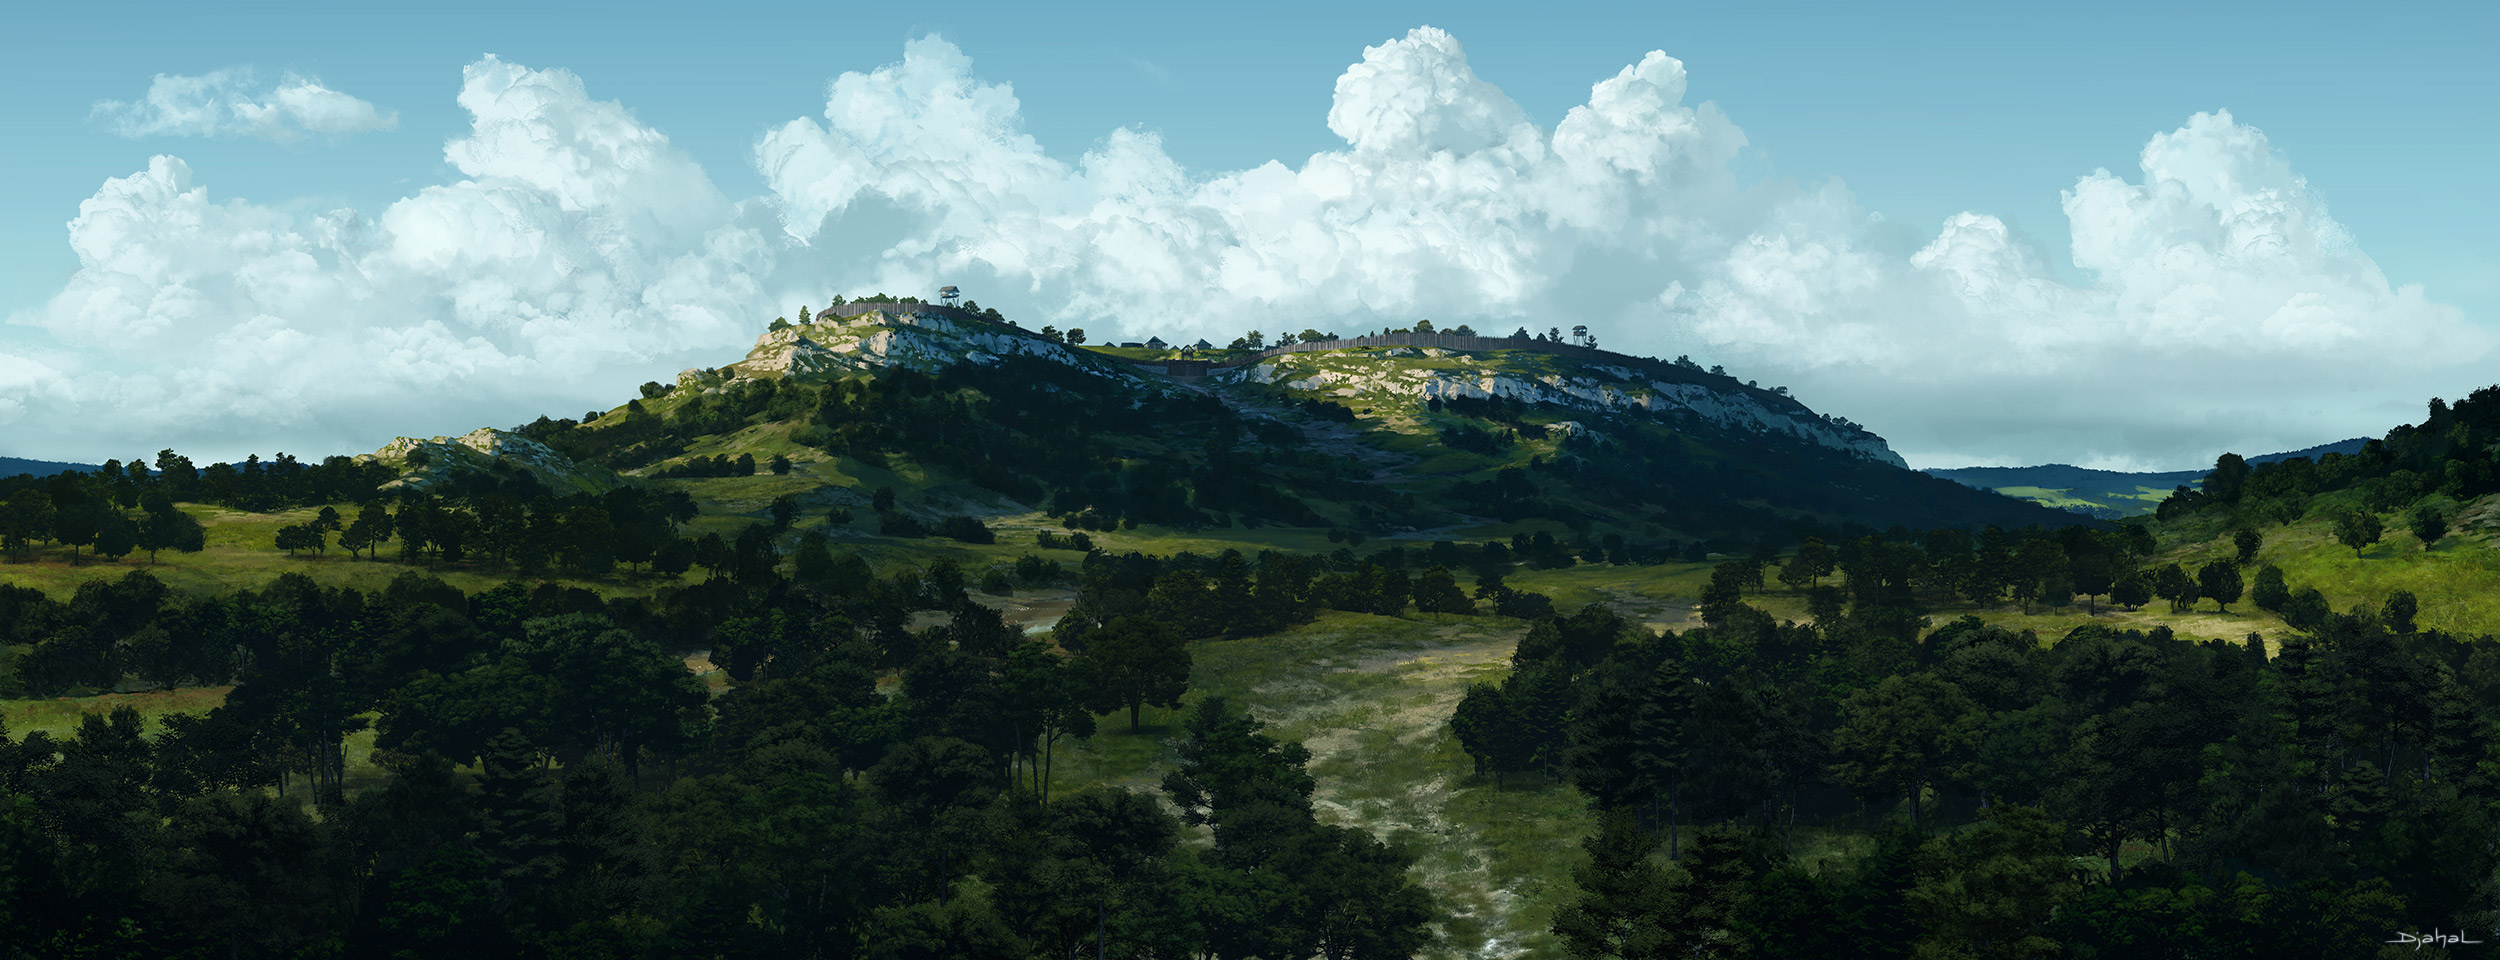 2014 | Background Art | Program 33 | Le Dernier Gaulois